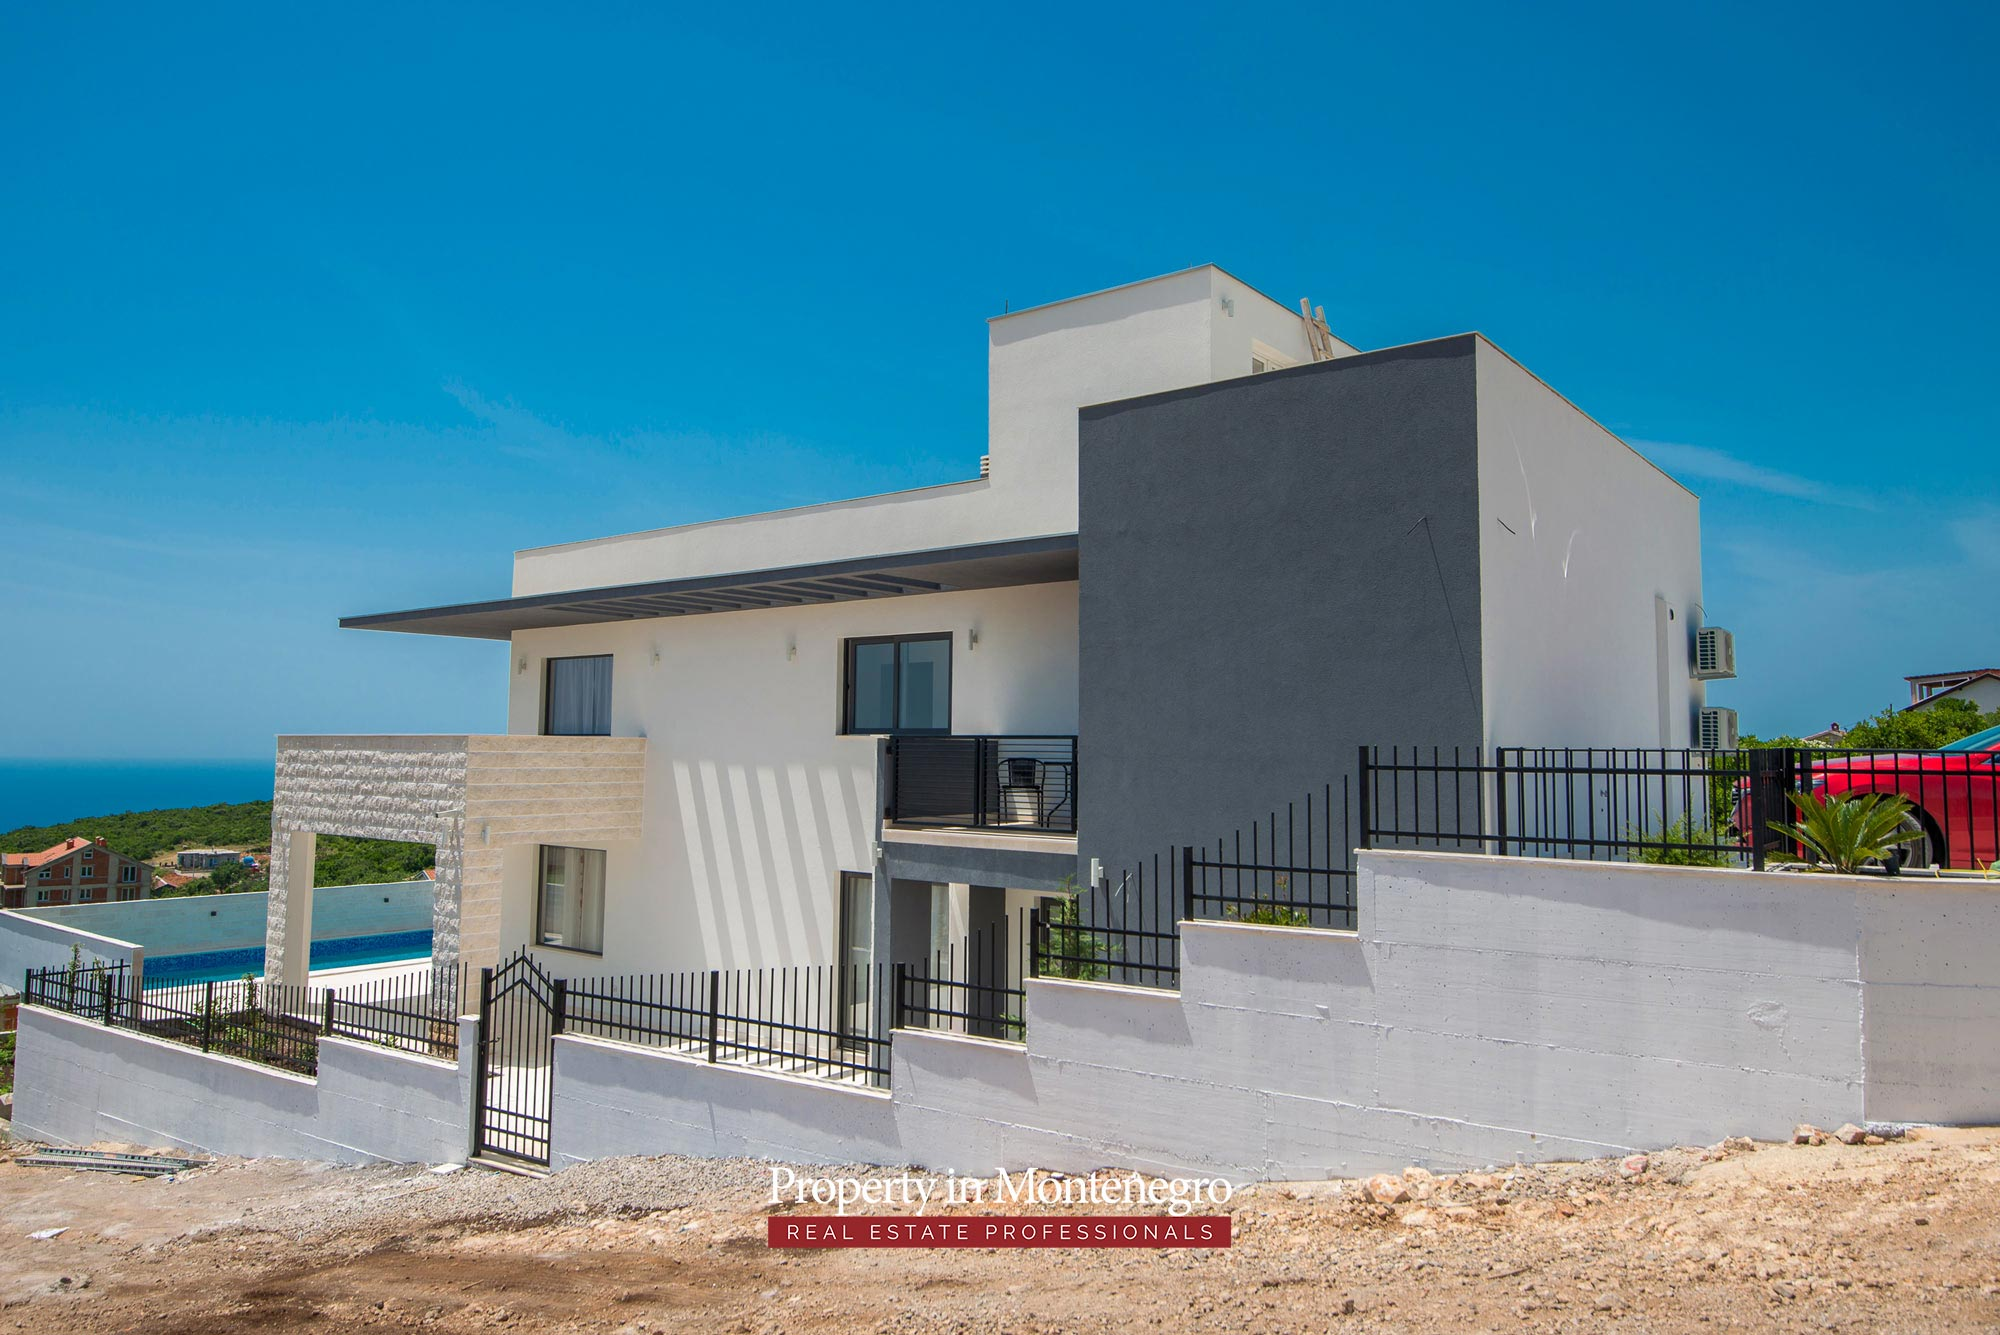 house-with-swimming-pool-for-sale-in-Krimovica-Trsteno (4).jpg